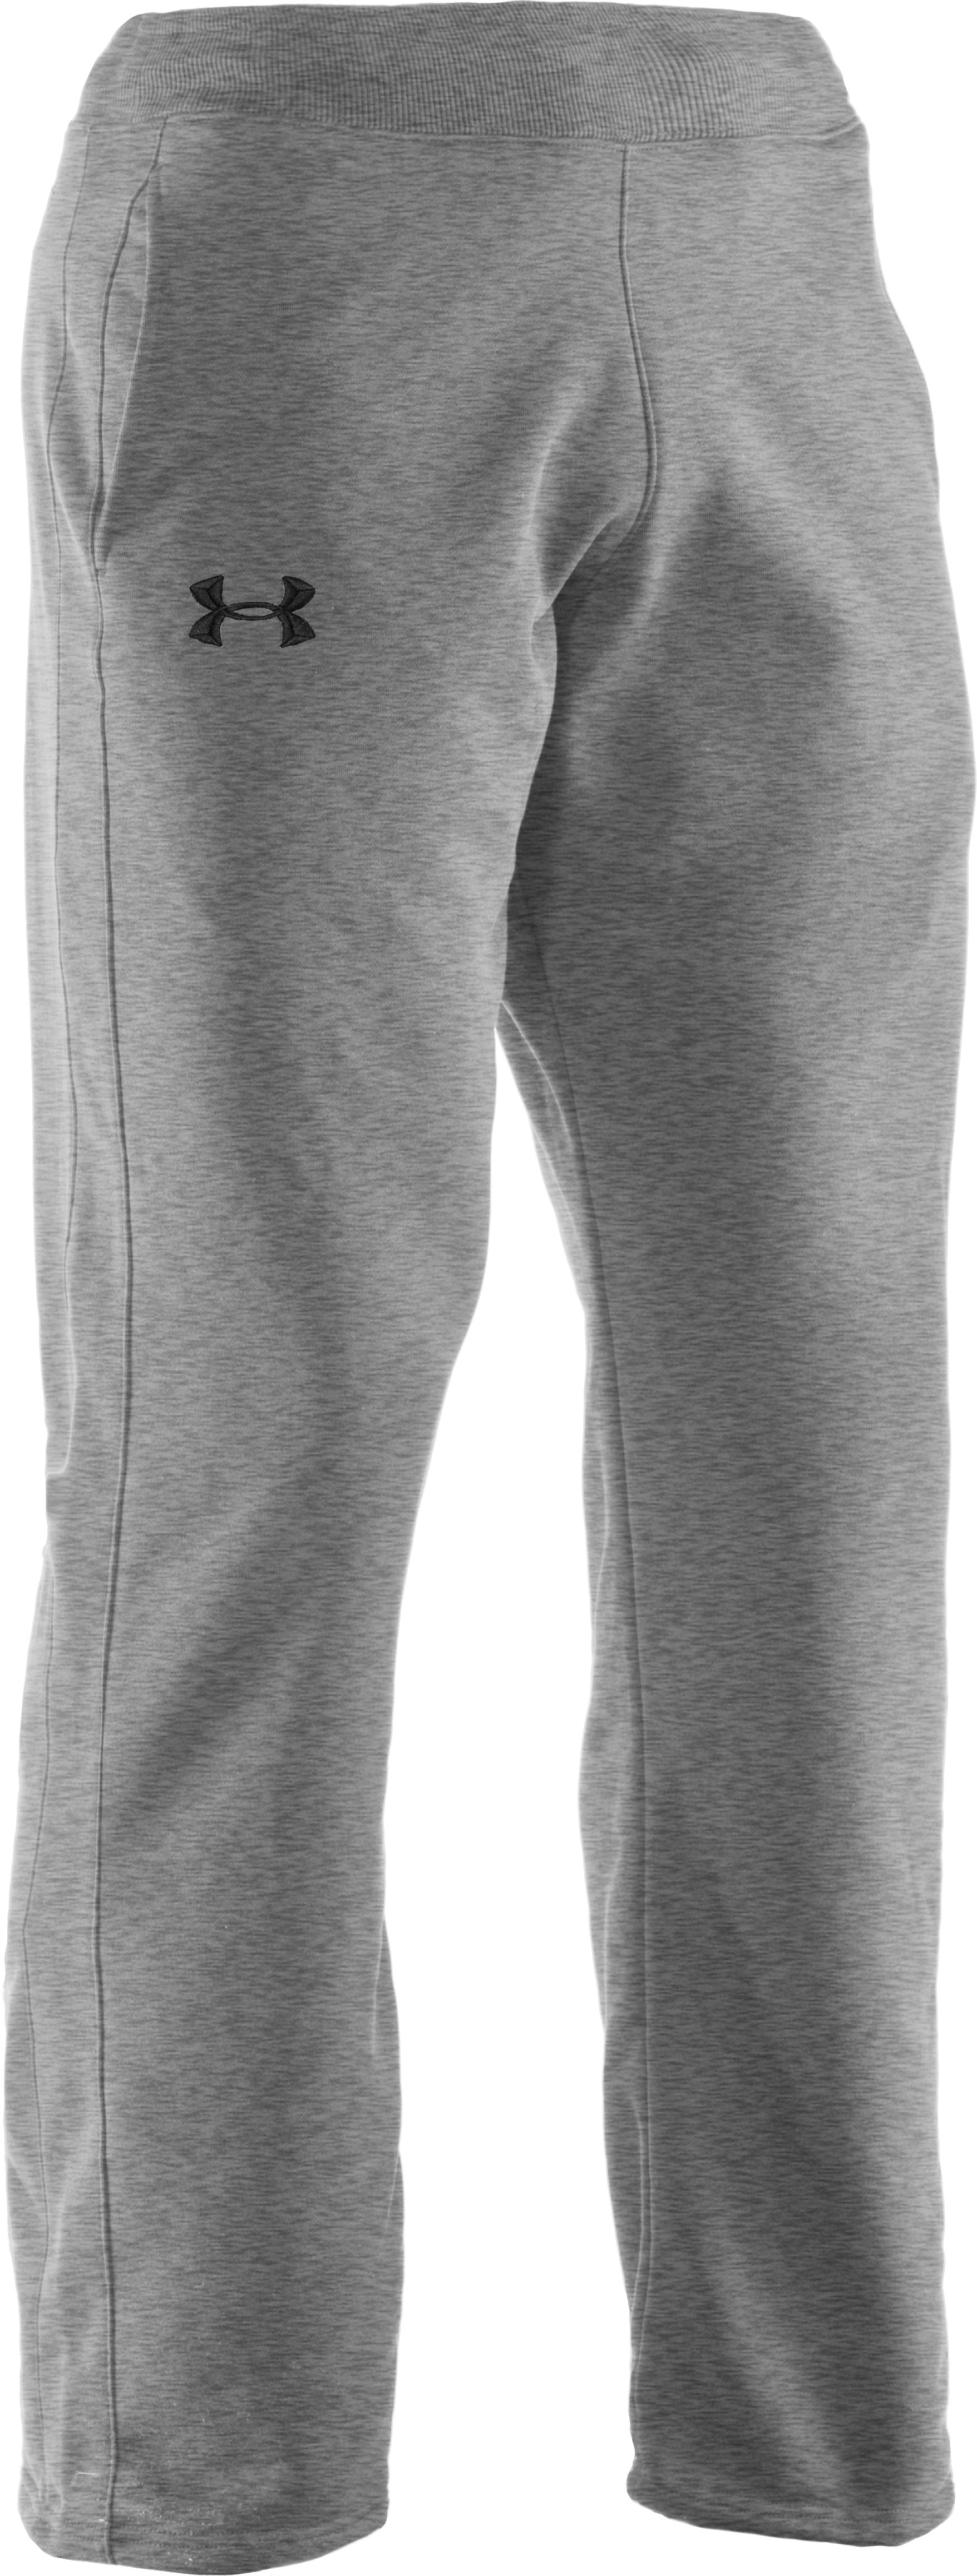 Men's Charged Cotton® Storm Pants, True Gray Heather, undefined